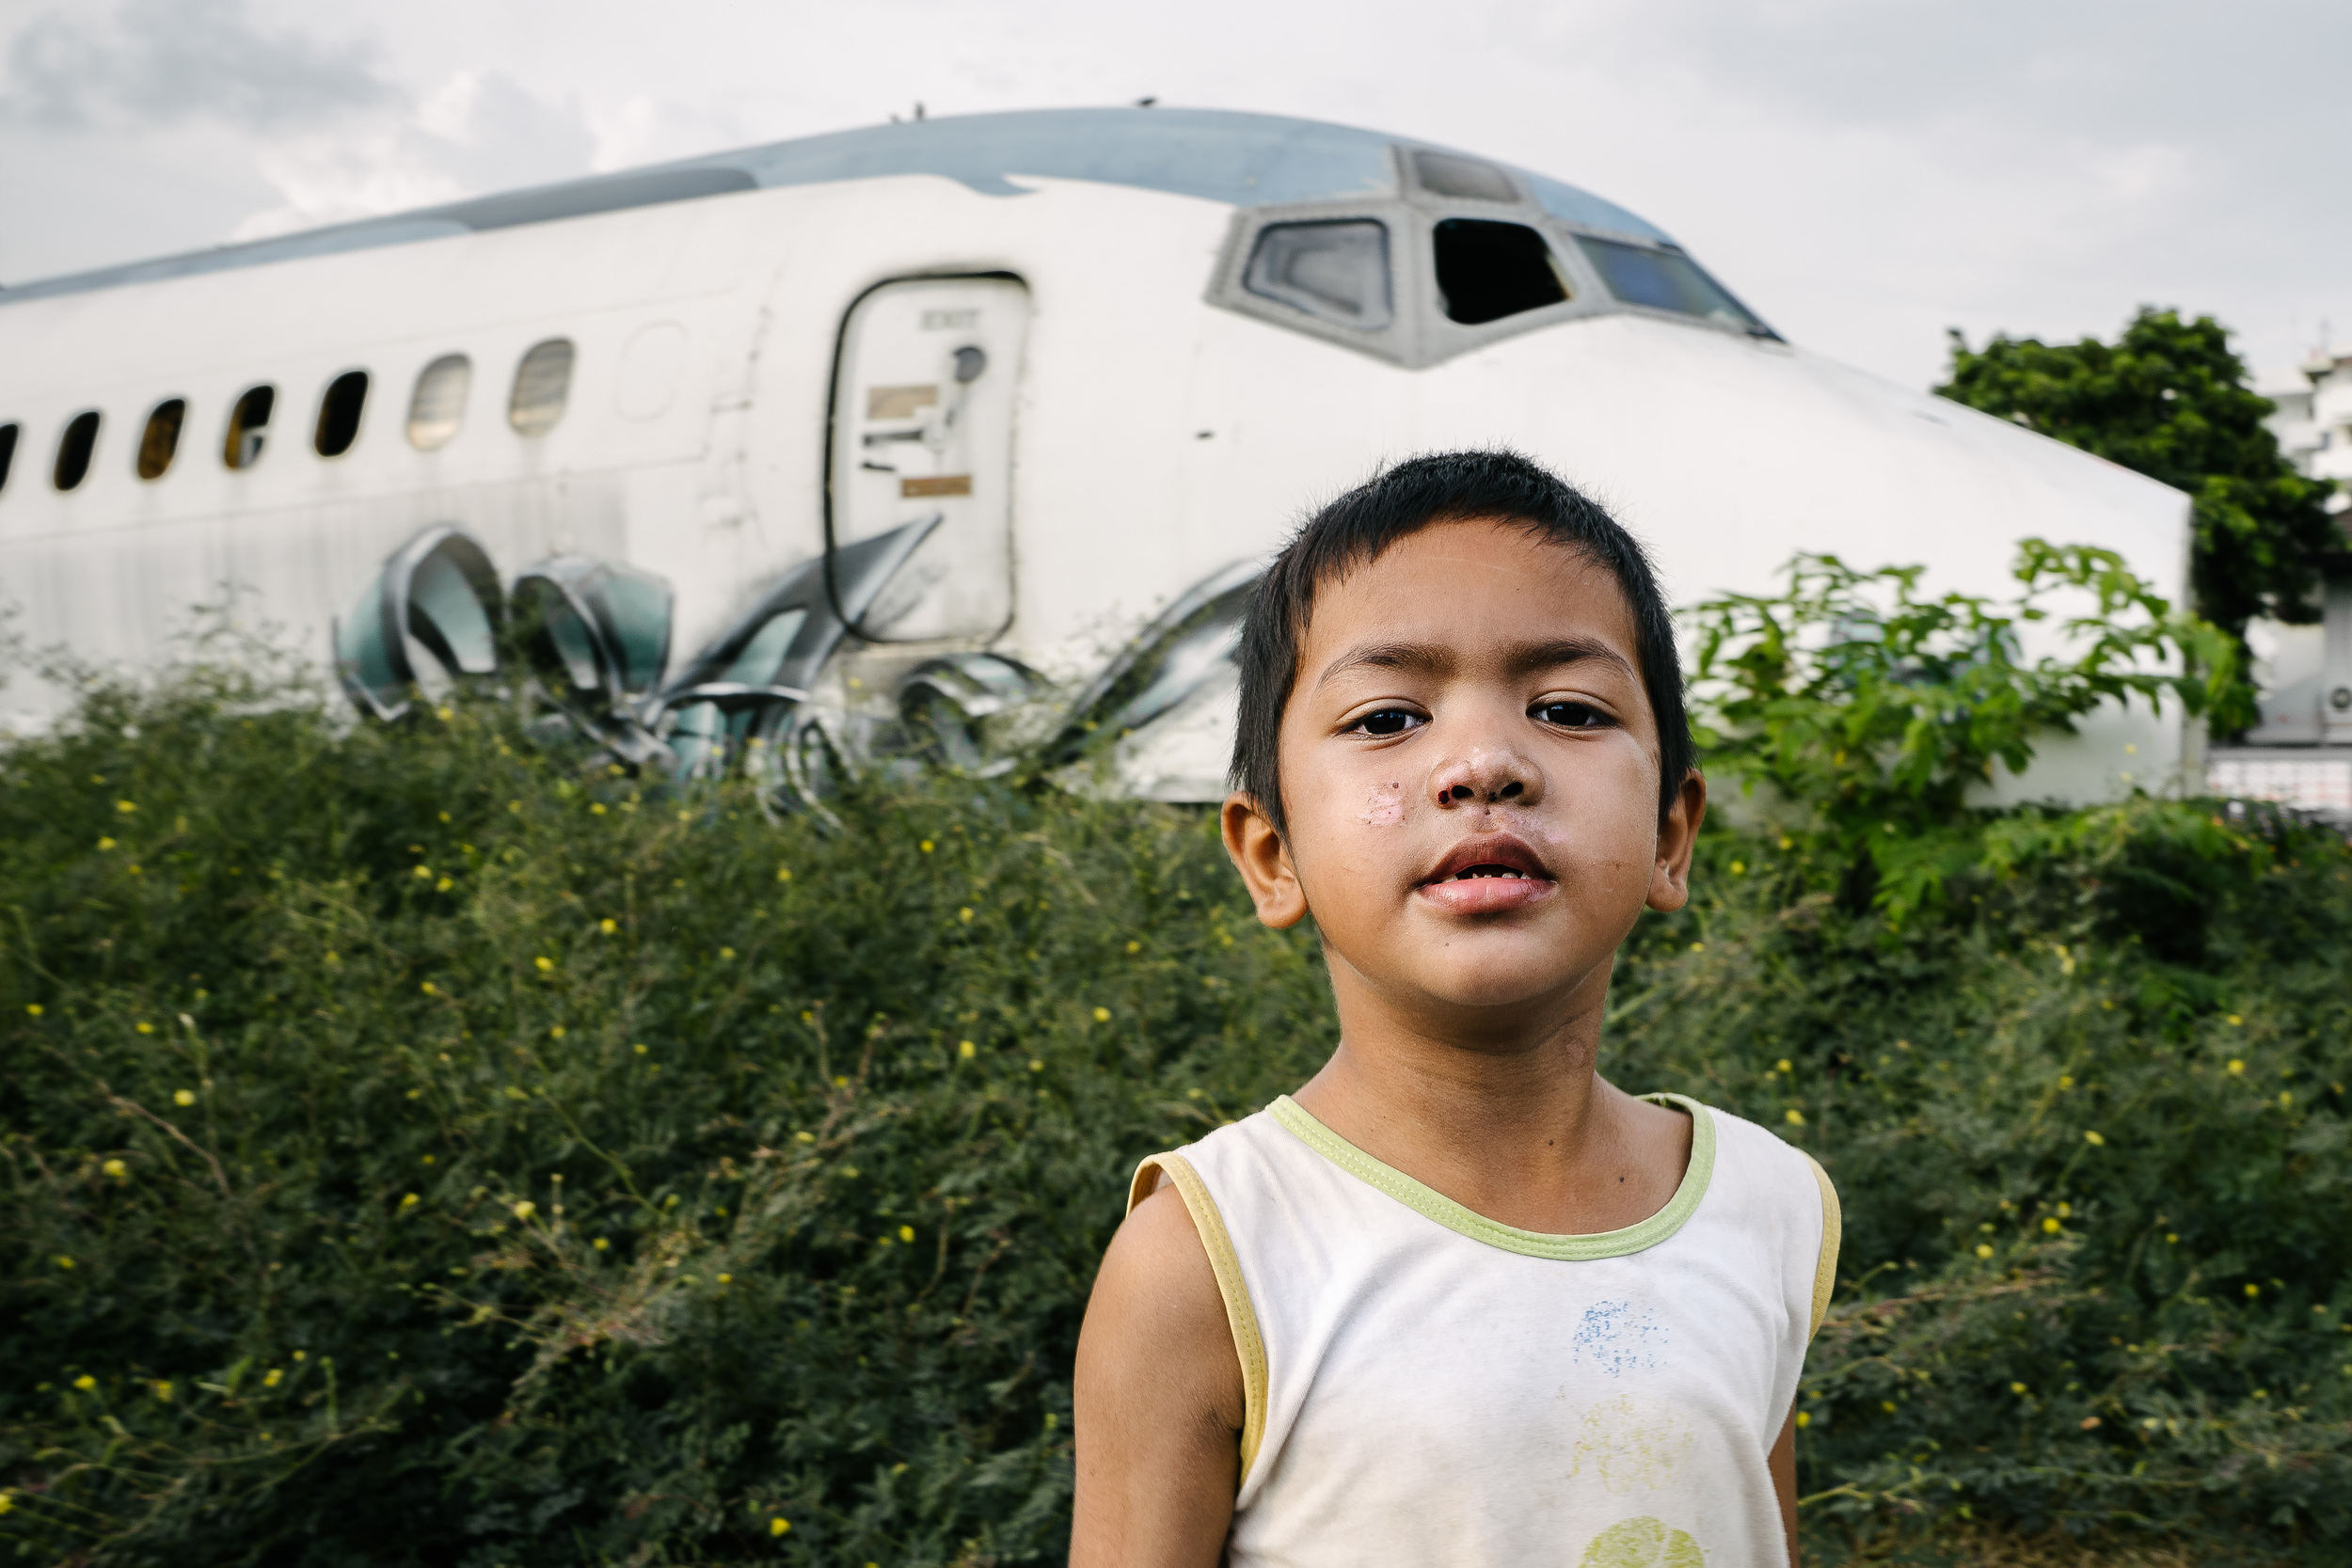 As our population grows the gap between the wealthy and the poor grows with it. This boy found asylum with his and other families in this previously abandoned airplane graveyard. It was an ironic twist of fate that these planes became homes to those who could never have afforded to fly in them.